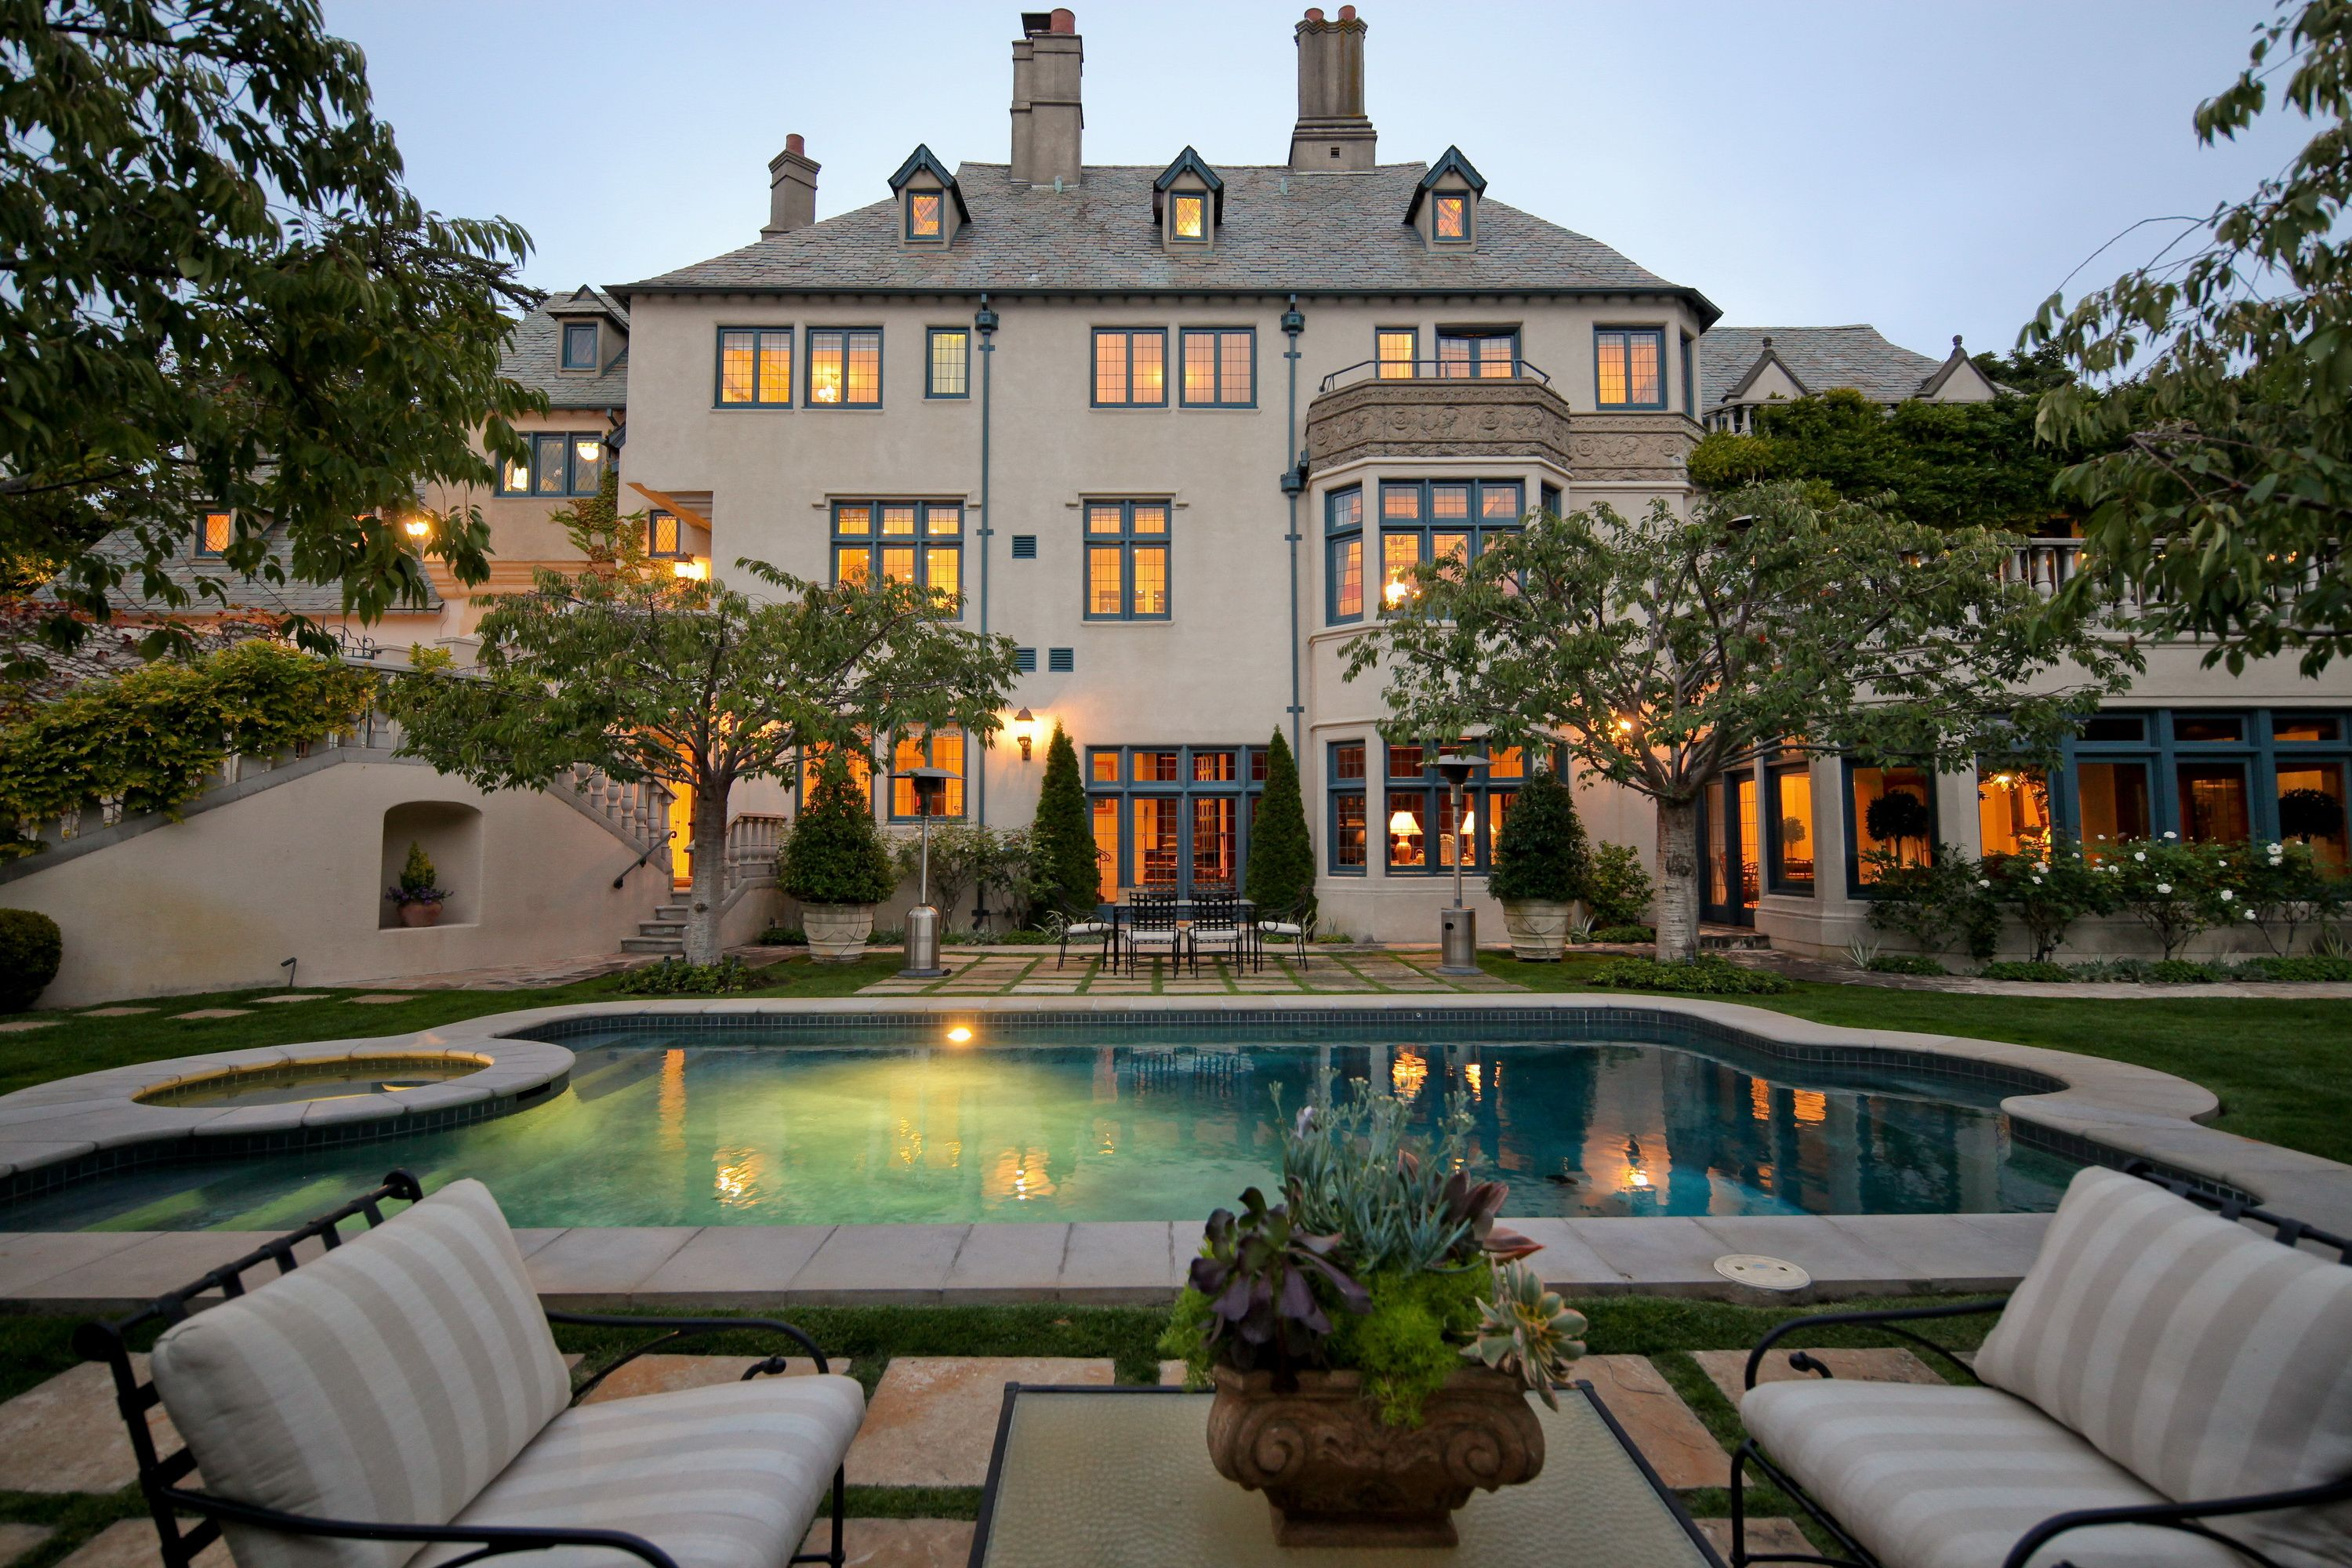 beverly hills beverly hills real estate luxury homes